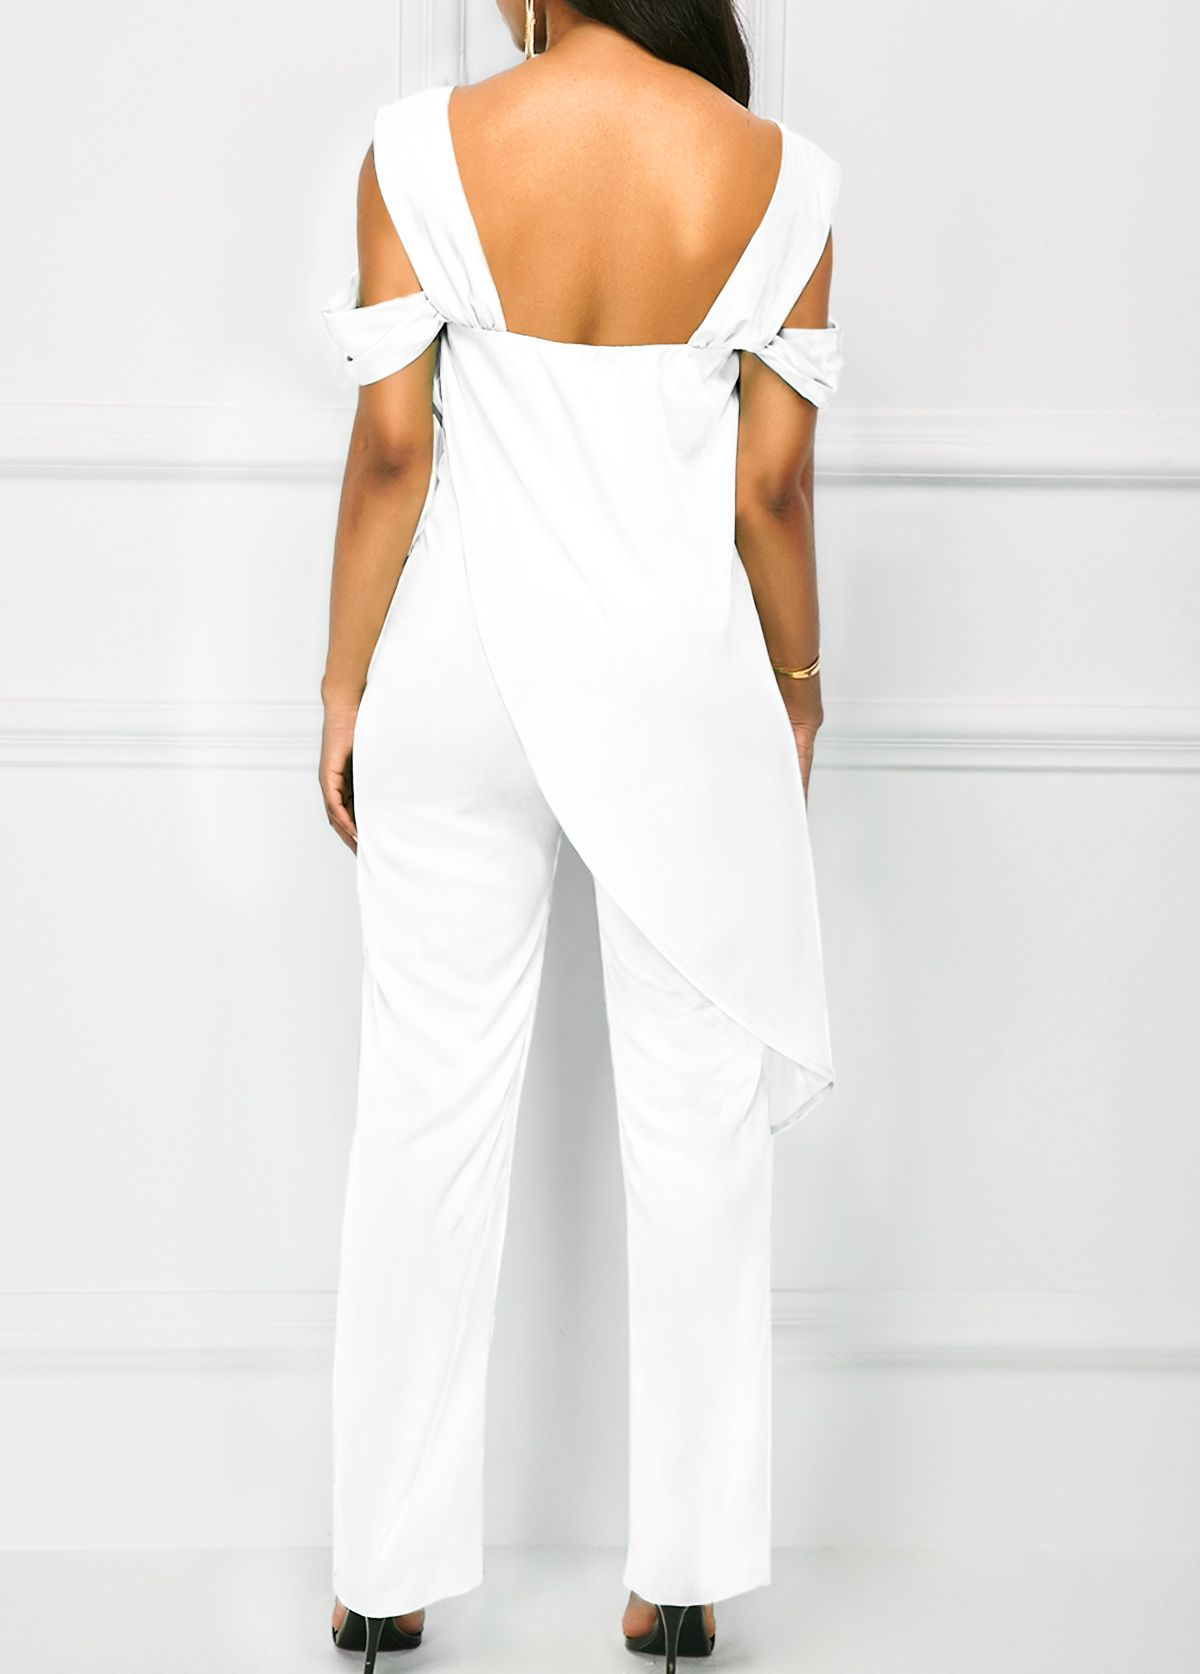 15407b77680 Open Back Overlay Embellished White Jumpsuit on sale only US 38.21 ...